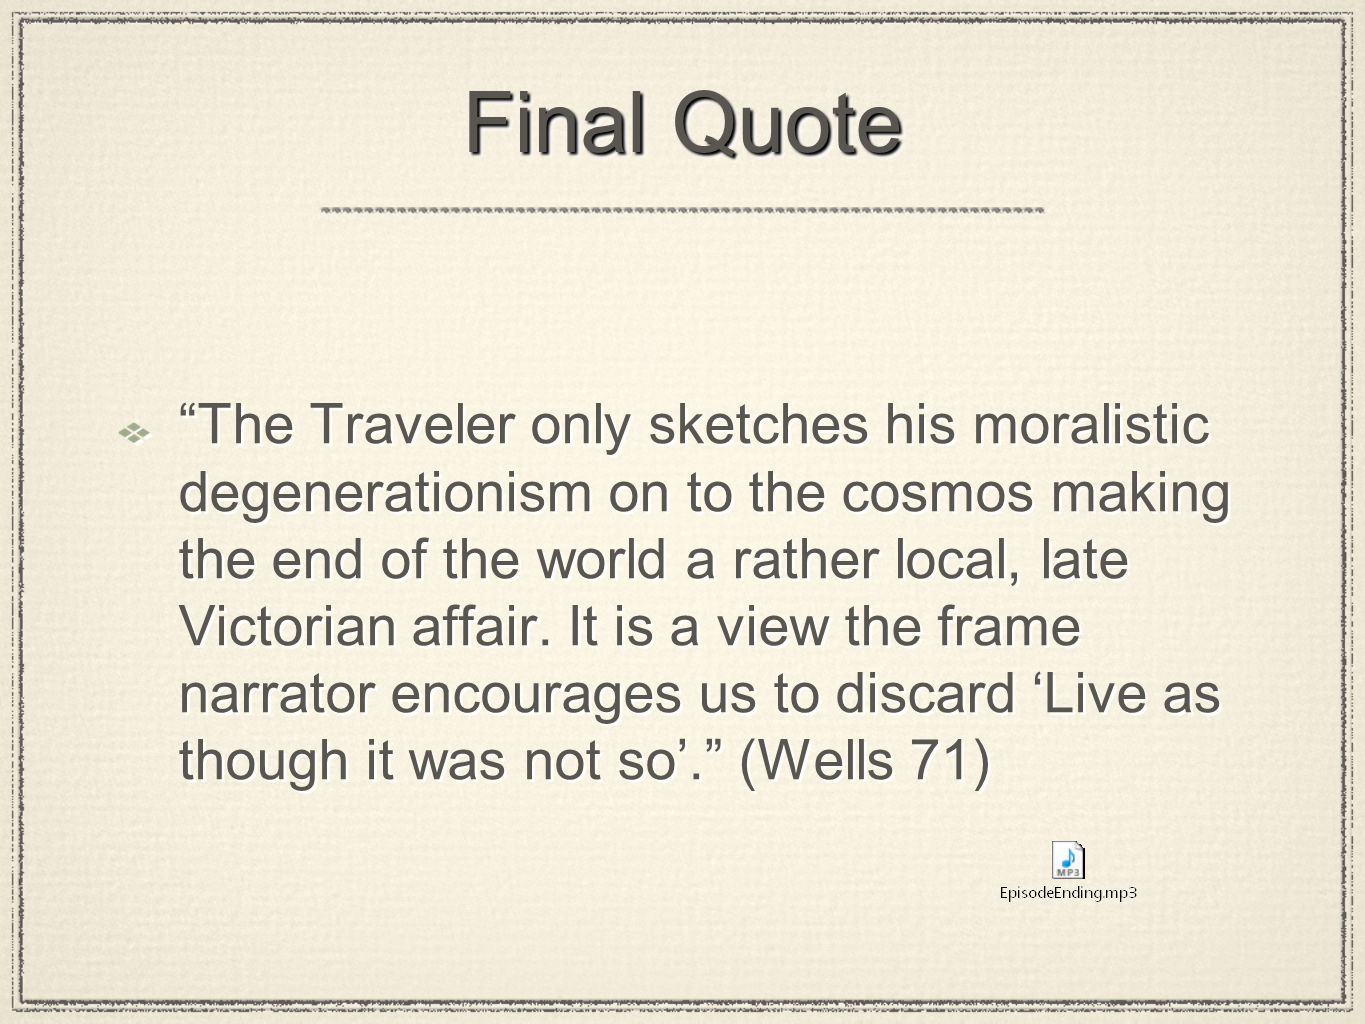 Final Quote The Traveler only sketches his moralistic degenerationism on to the cosmos making the end of the world a rather local, late Victorian affair.